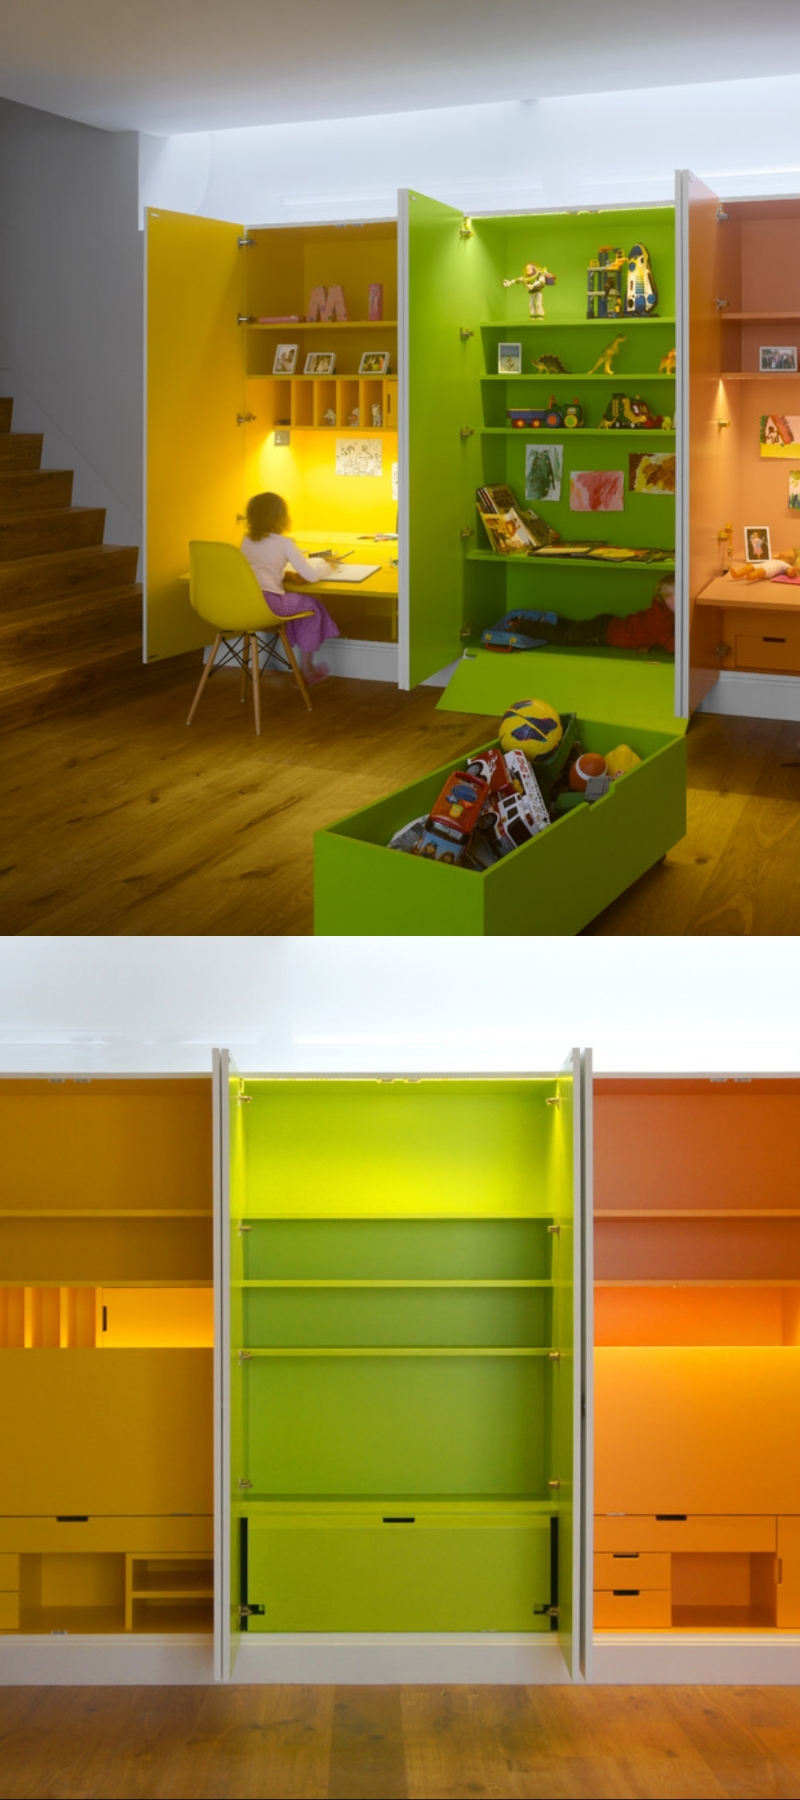 Decorating small home ideas read also space theme room ideas for kids